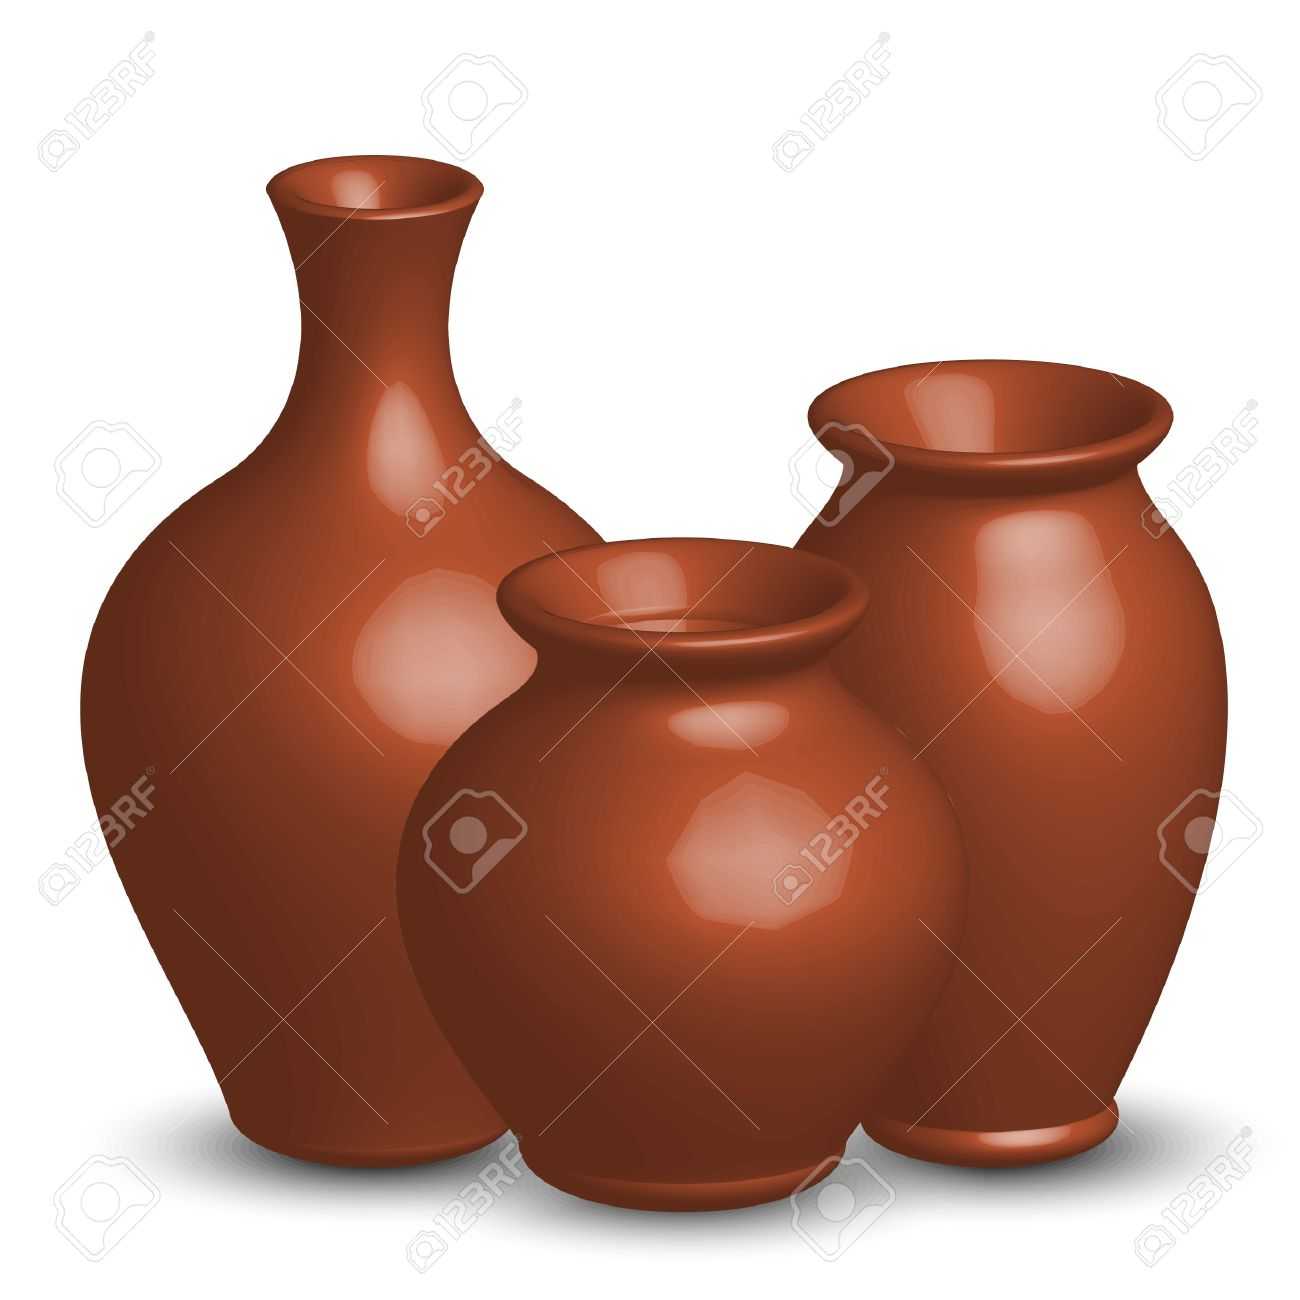 Clay pot clipart 7 » Clipart Station.